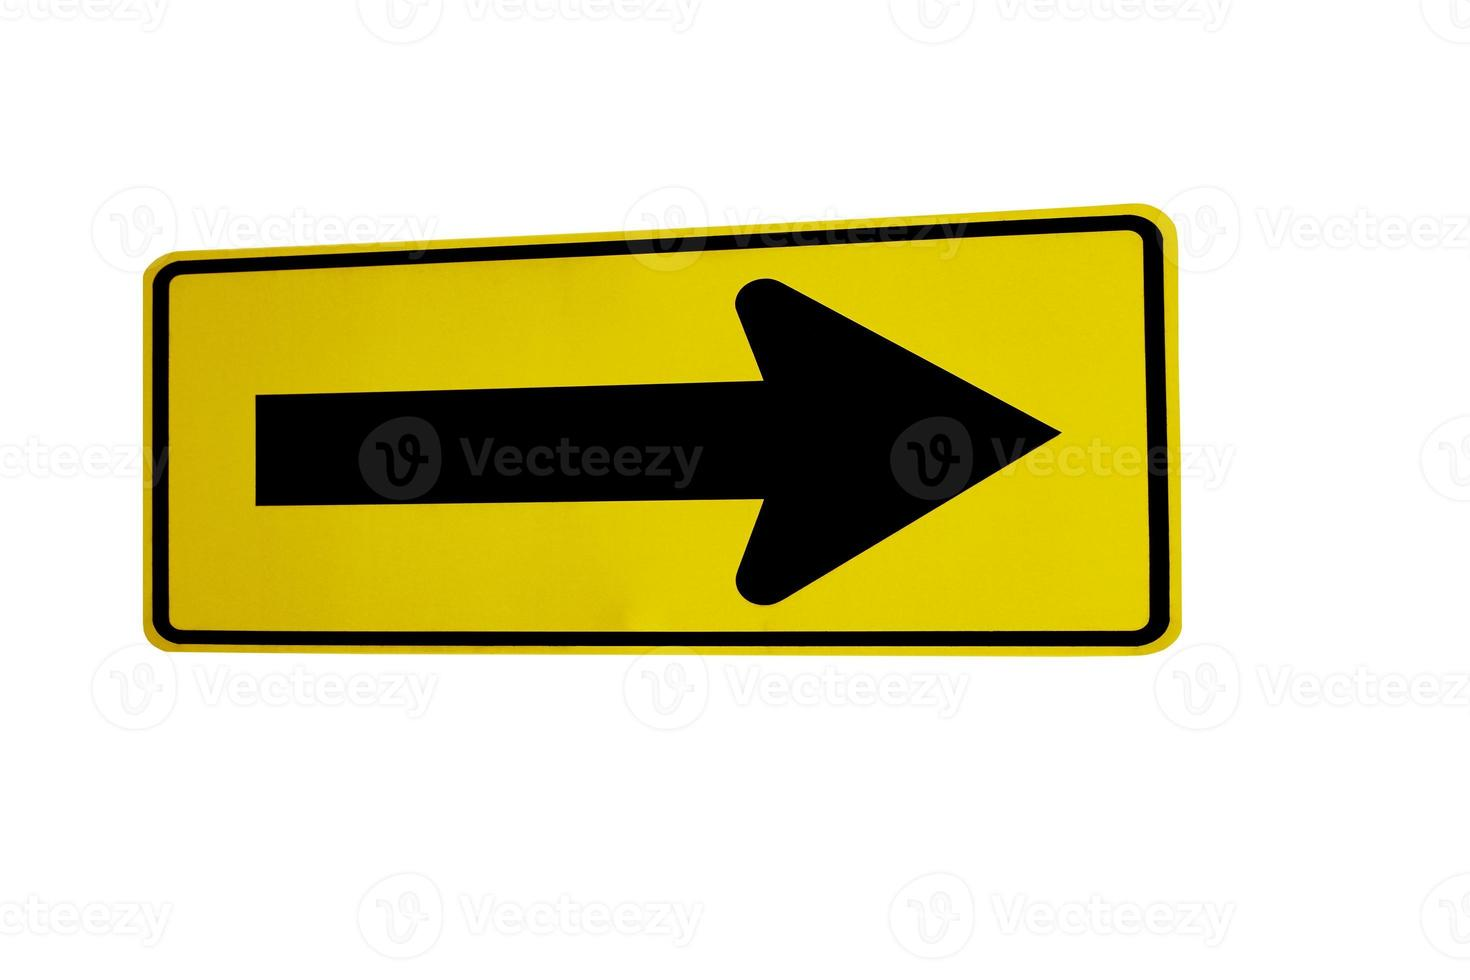 Directional Road Sign photo